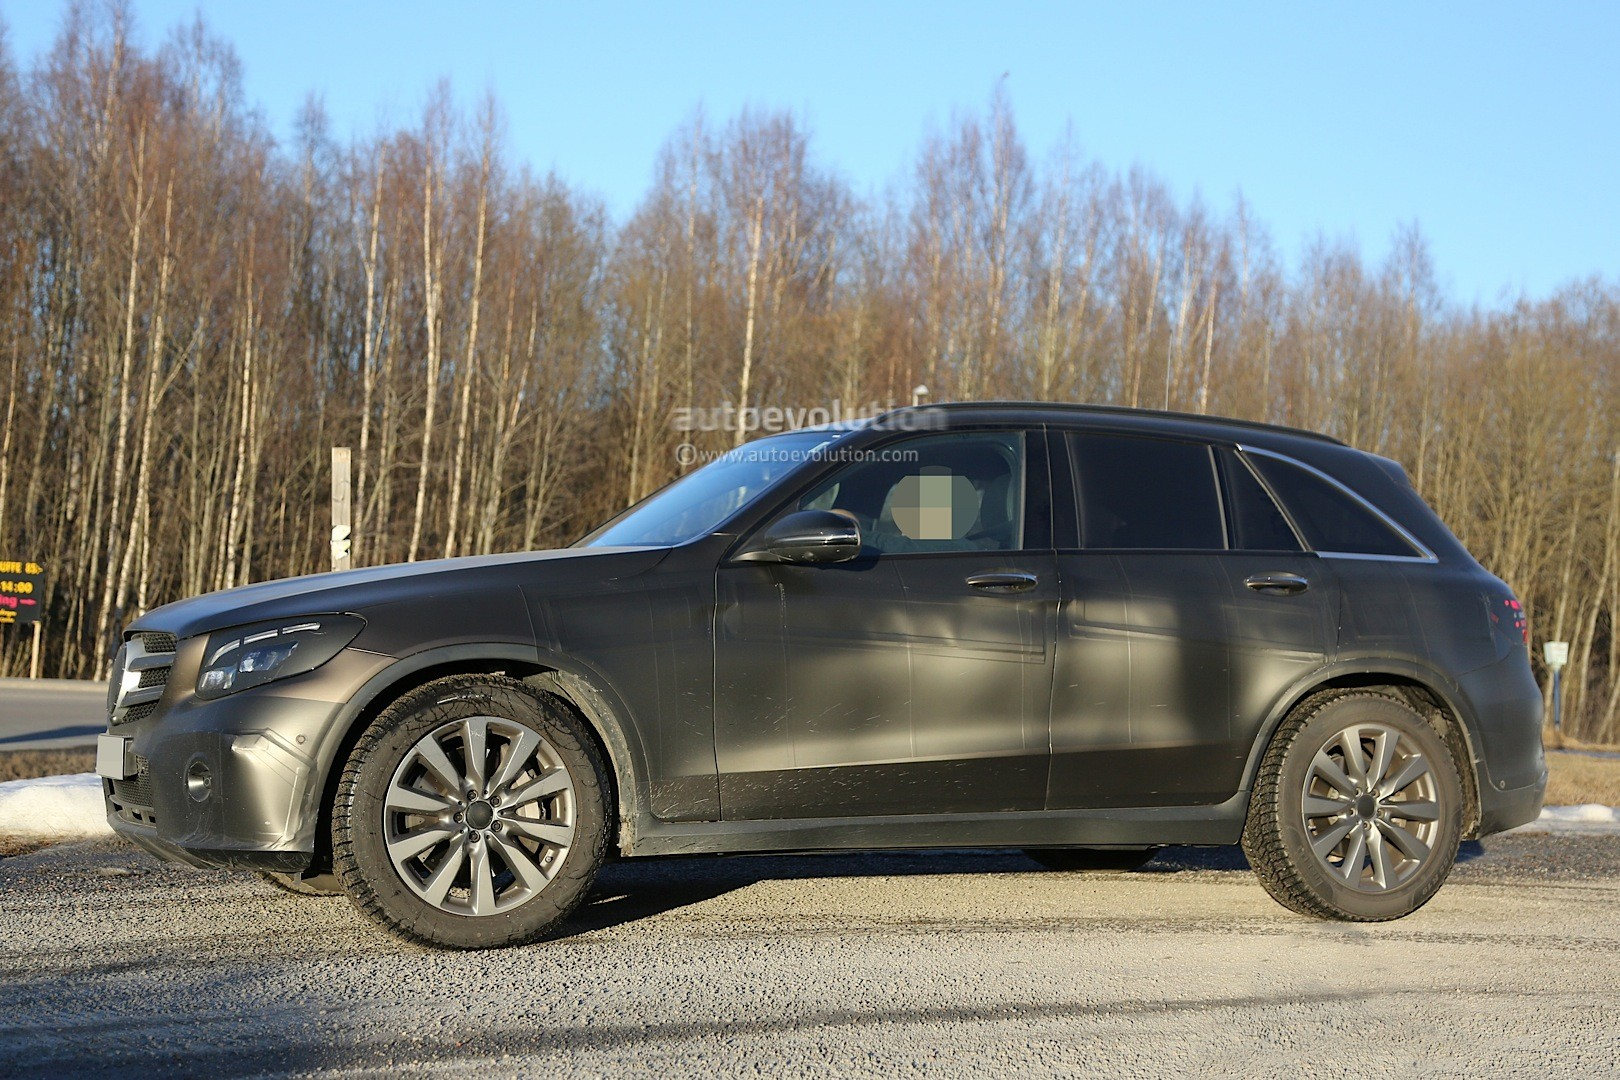 2015 - [Mercedes] GLC (GLK II) [X205] - Page 10 2016-mercedes-glc-spy-photos-show-nearly-undisguised-pre-production-prototypes_14